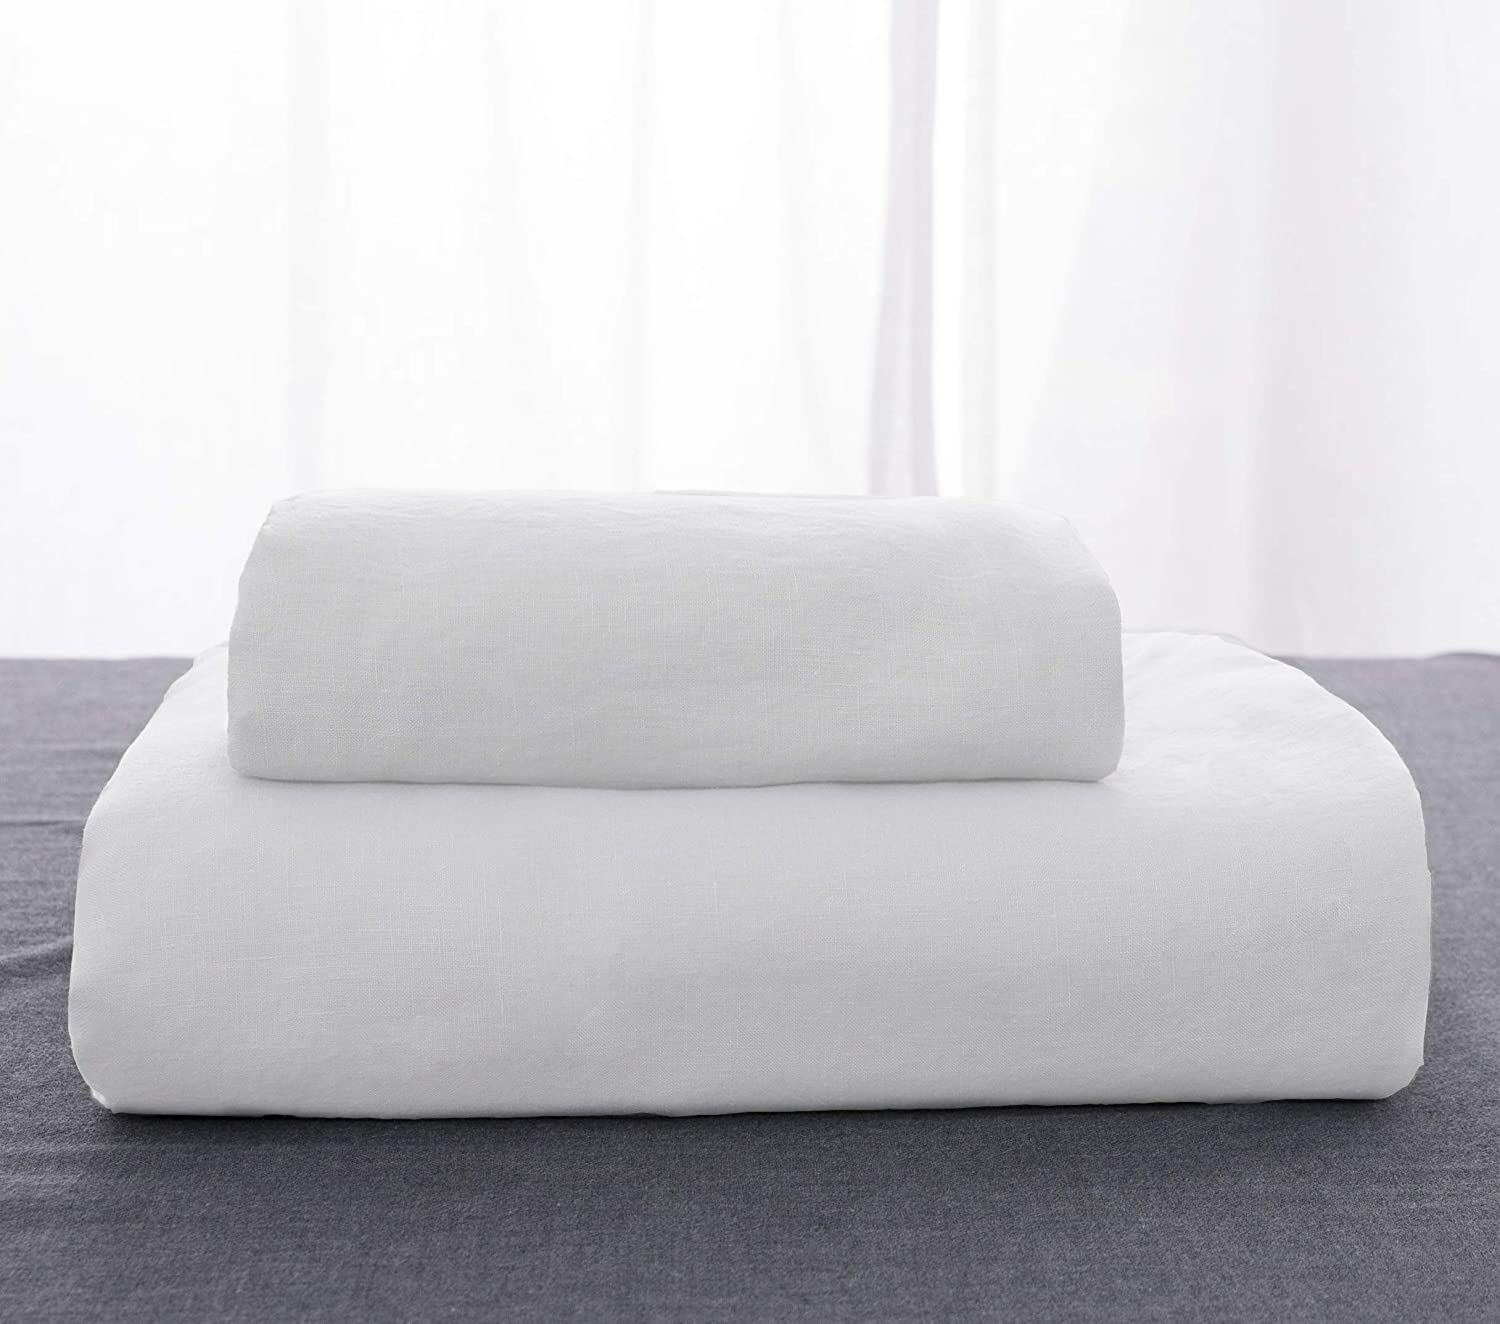 Simple/&Opulence 100/% Linen Stone Washed Euro Sham with Ruffle 26x26 Inch Pillow Cover Set of 2 White, 26x26